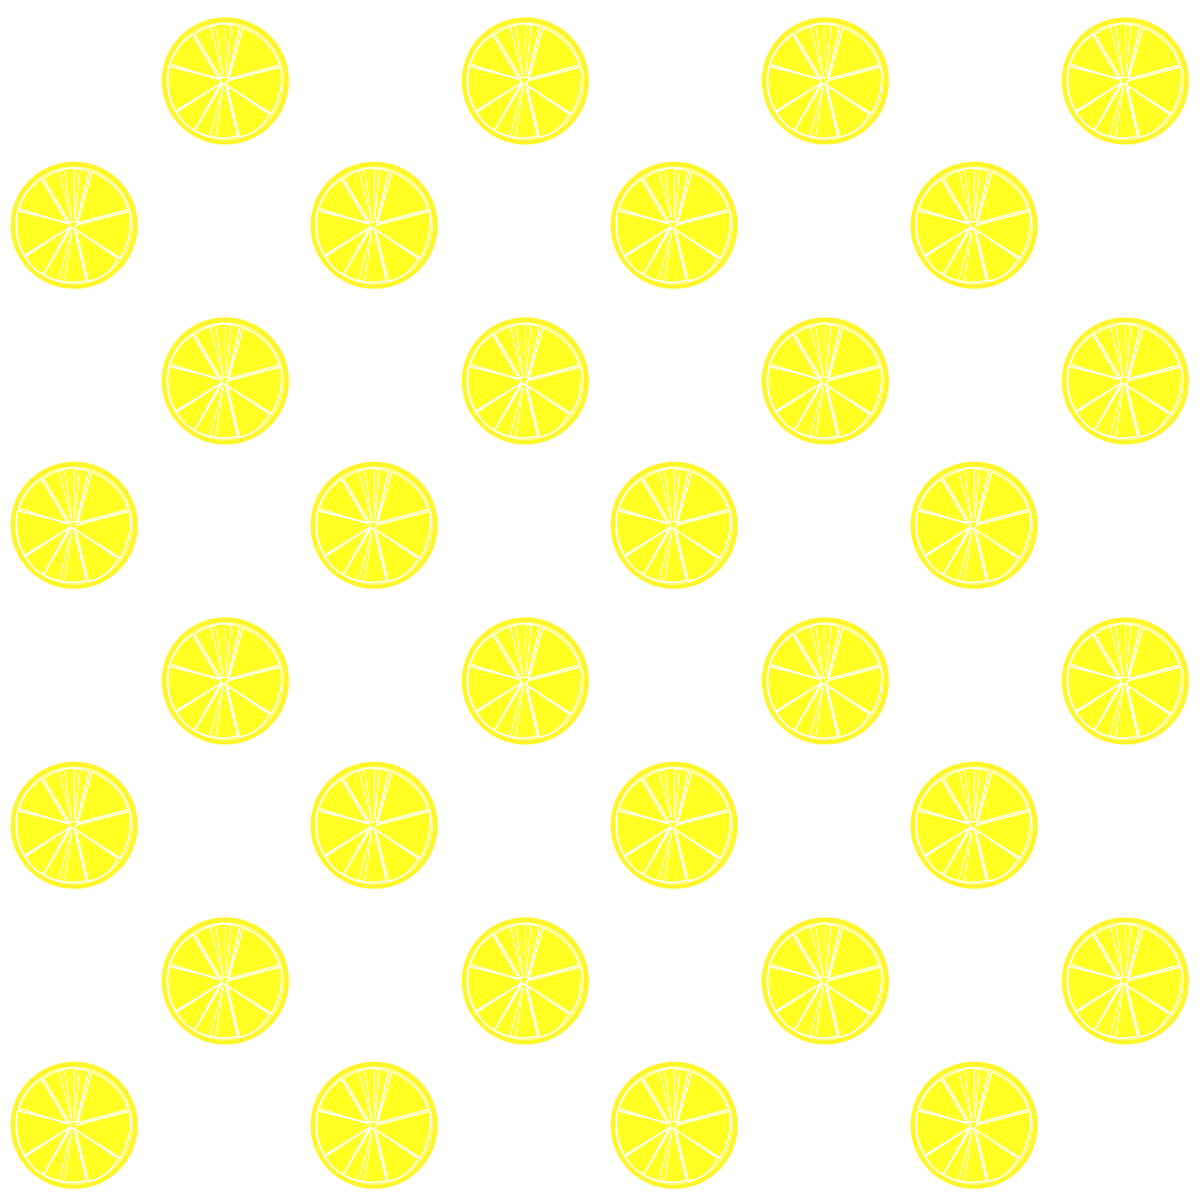 [32+] Lemon and Grey Wallpaper on WallpaperSafari